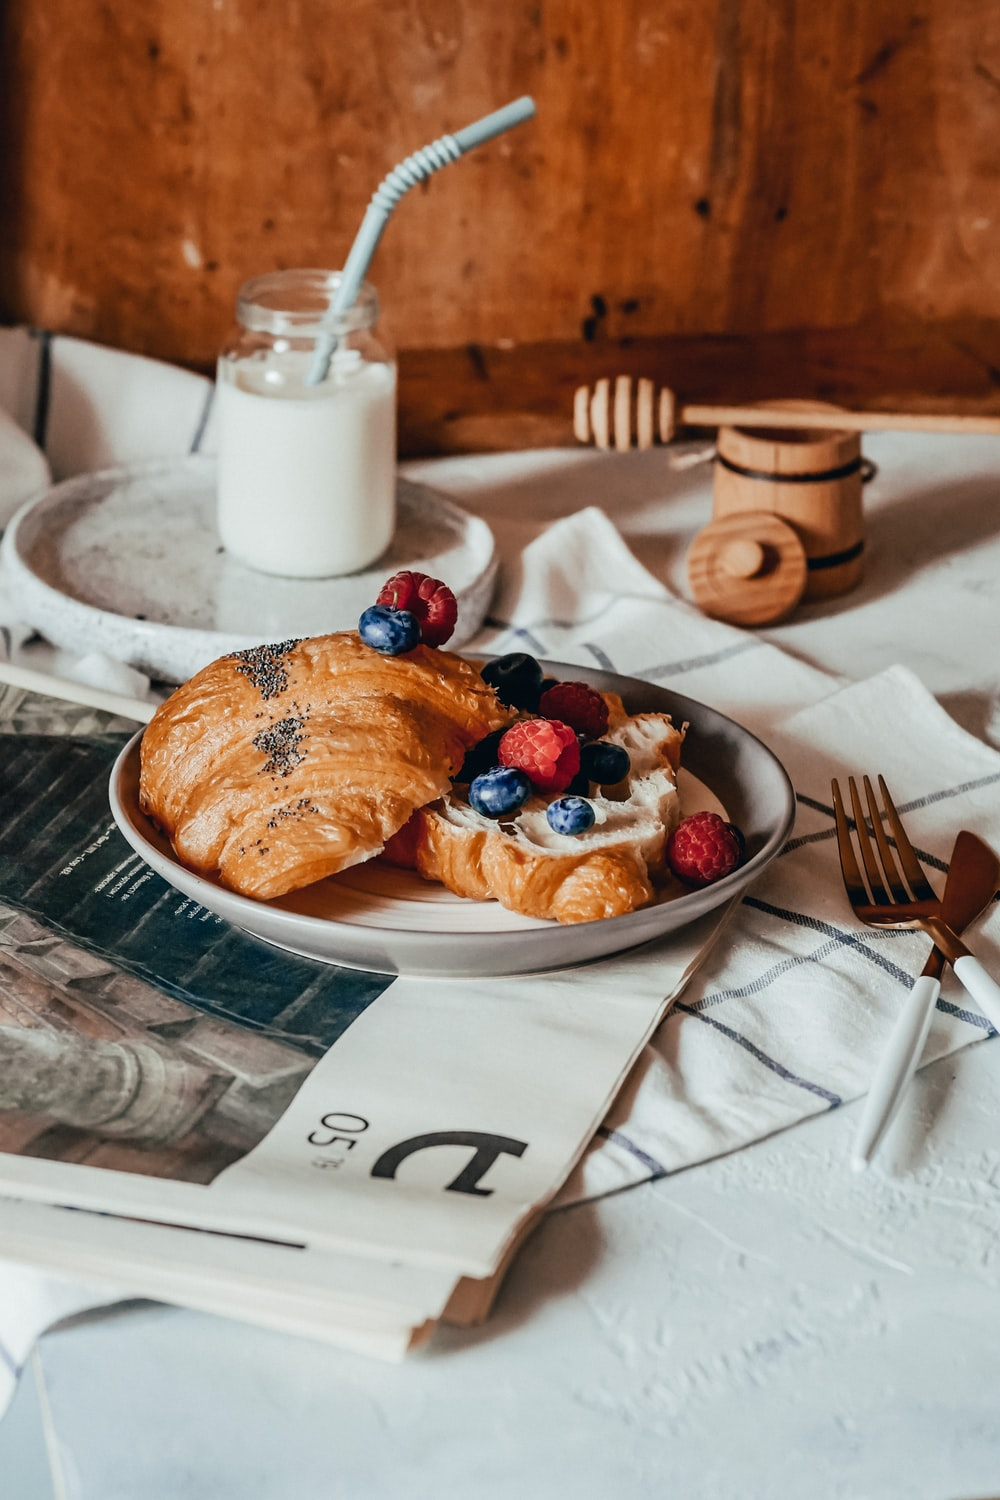 bread on white ceramic plate beside stainless steel fork and knife